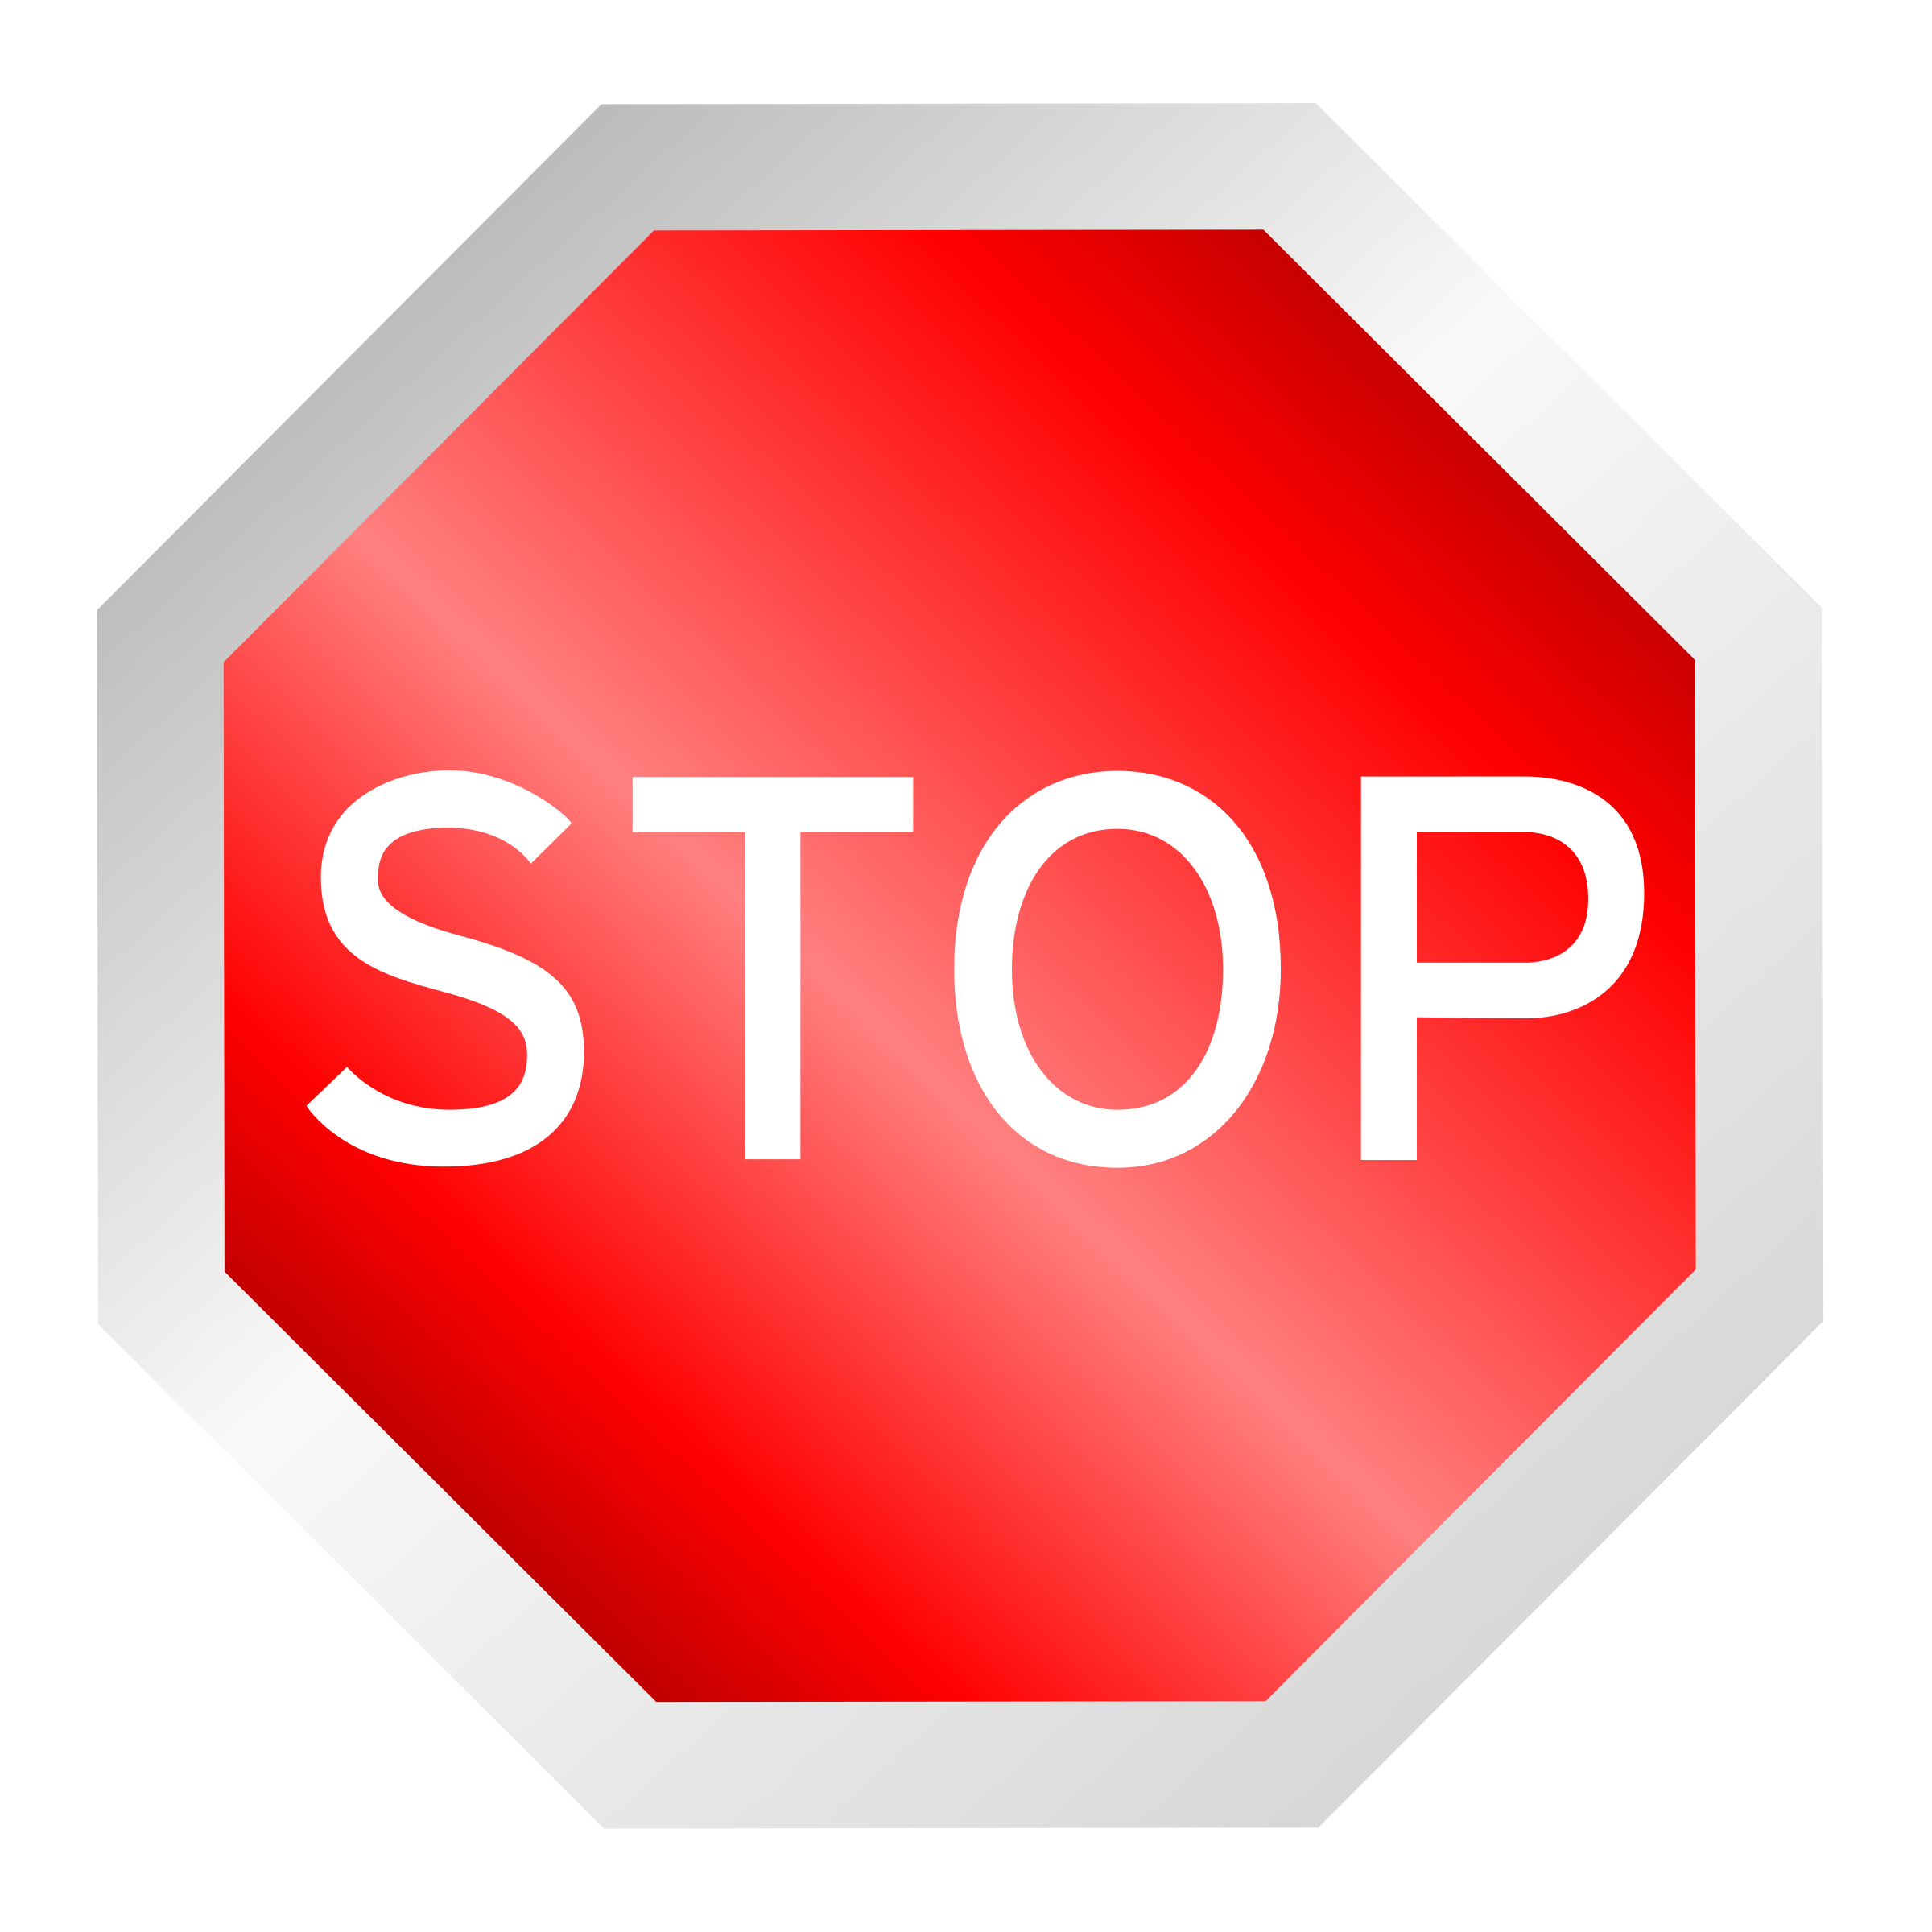 Stop Sign by jhnri4